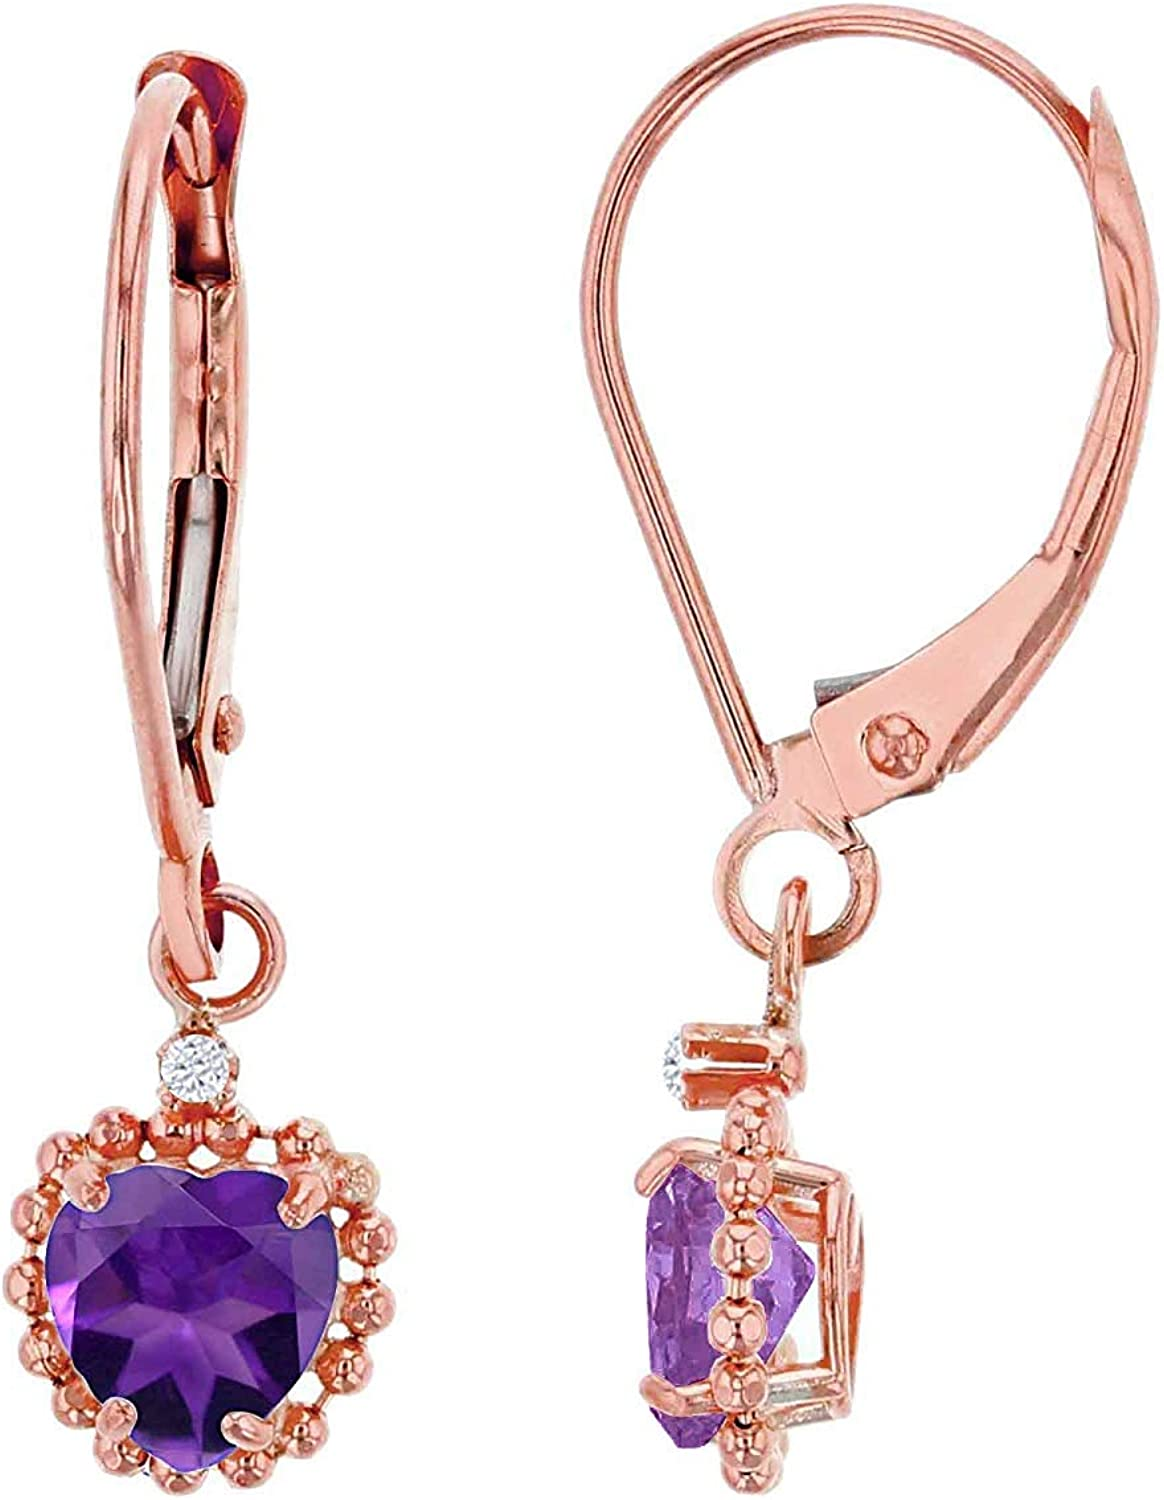 10K White Gold 1.25mm Round White Topaz /& 6x4mm Oval Pink Topaz Bead Frame Drop Leverback Earring